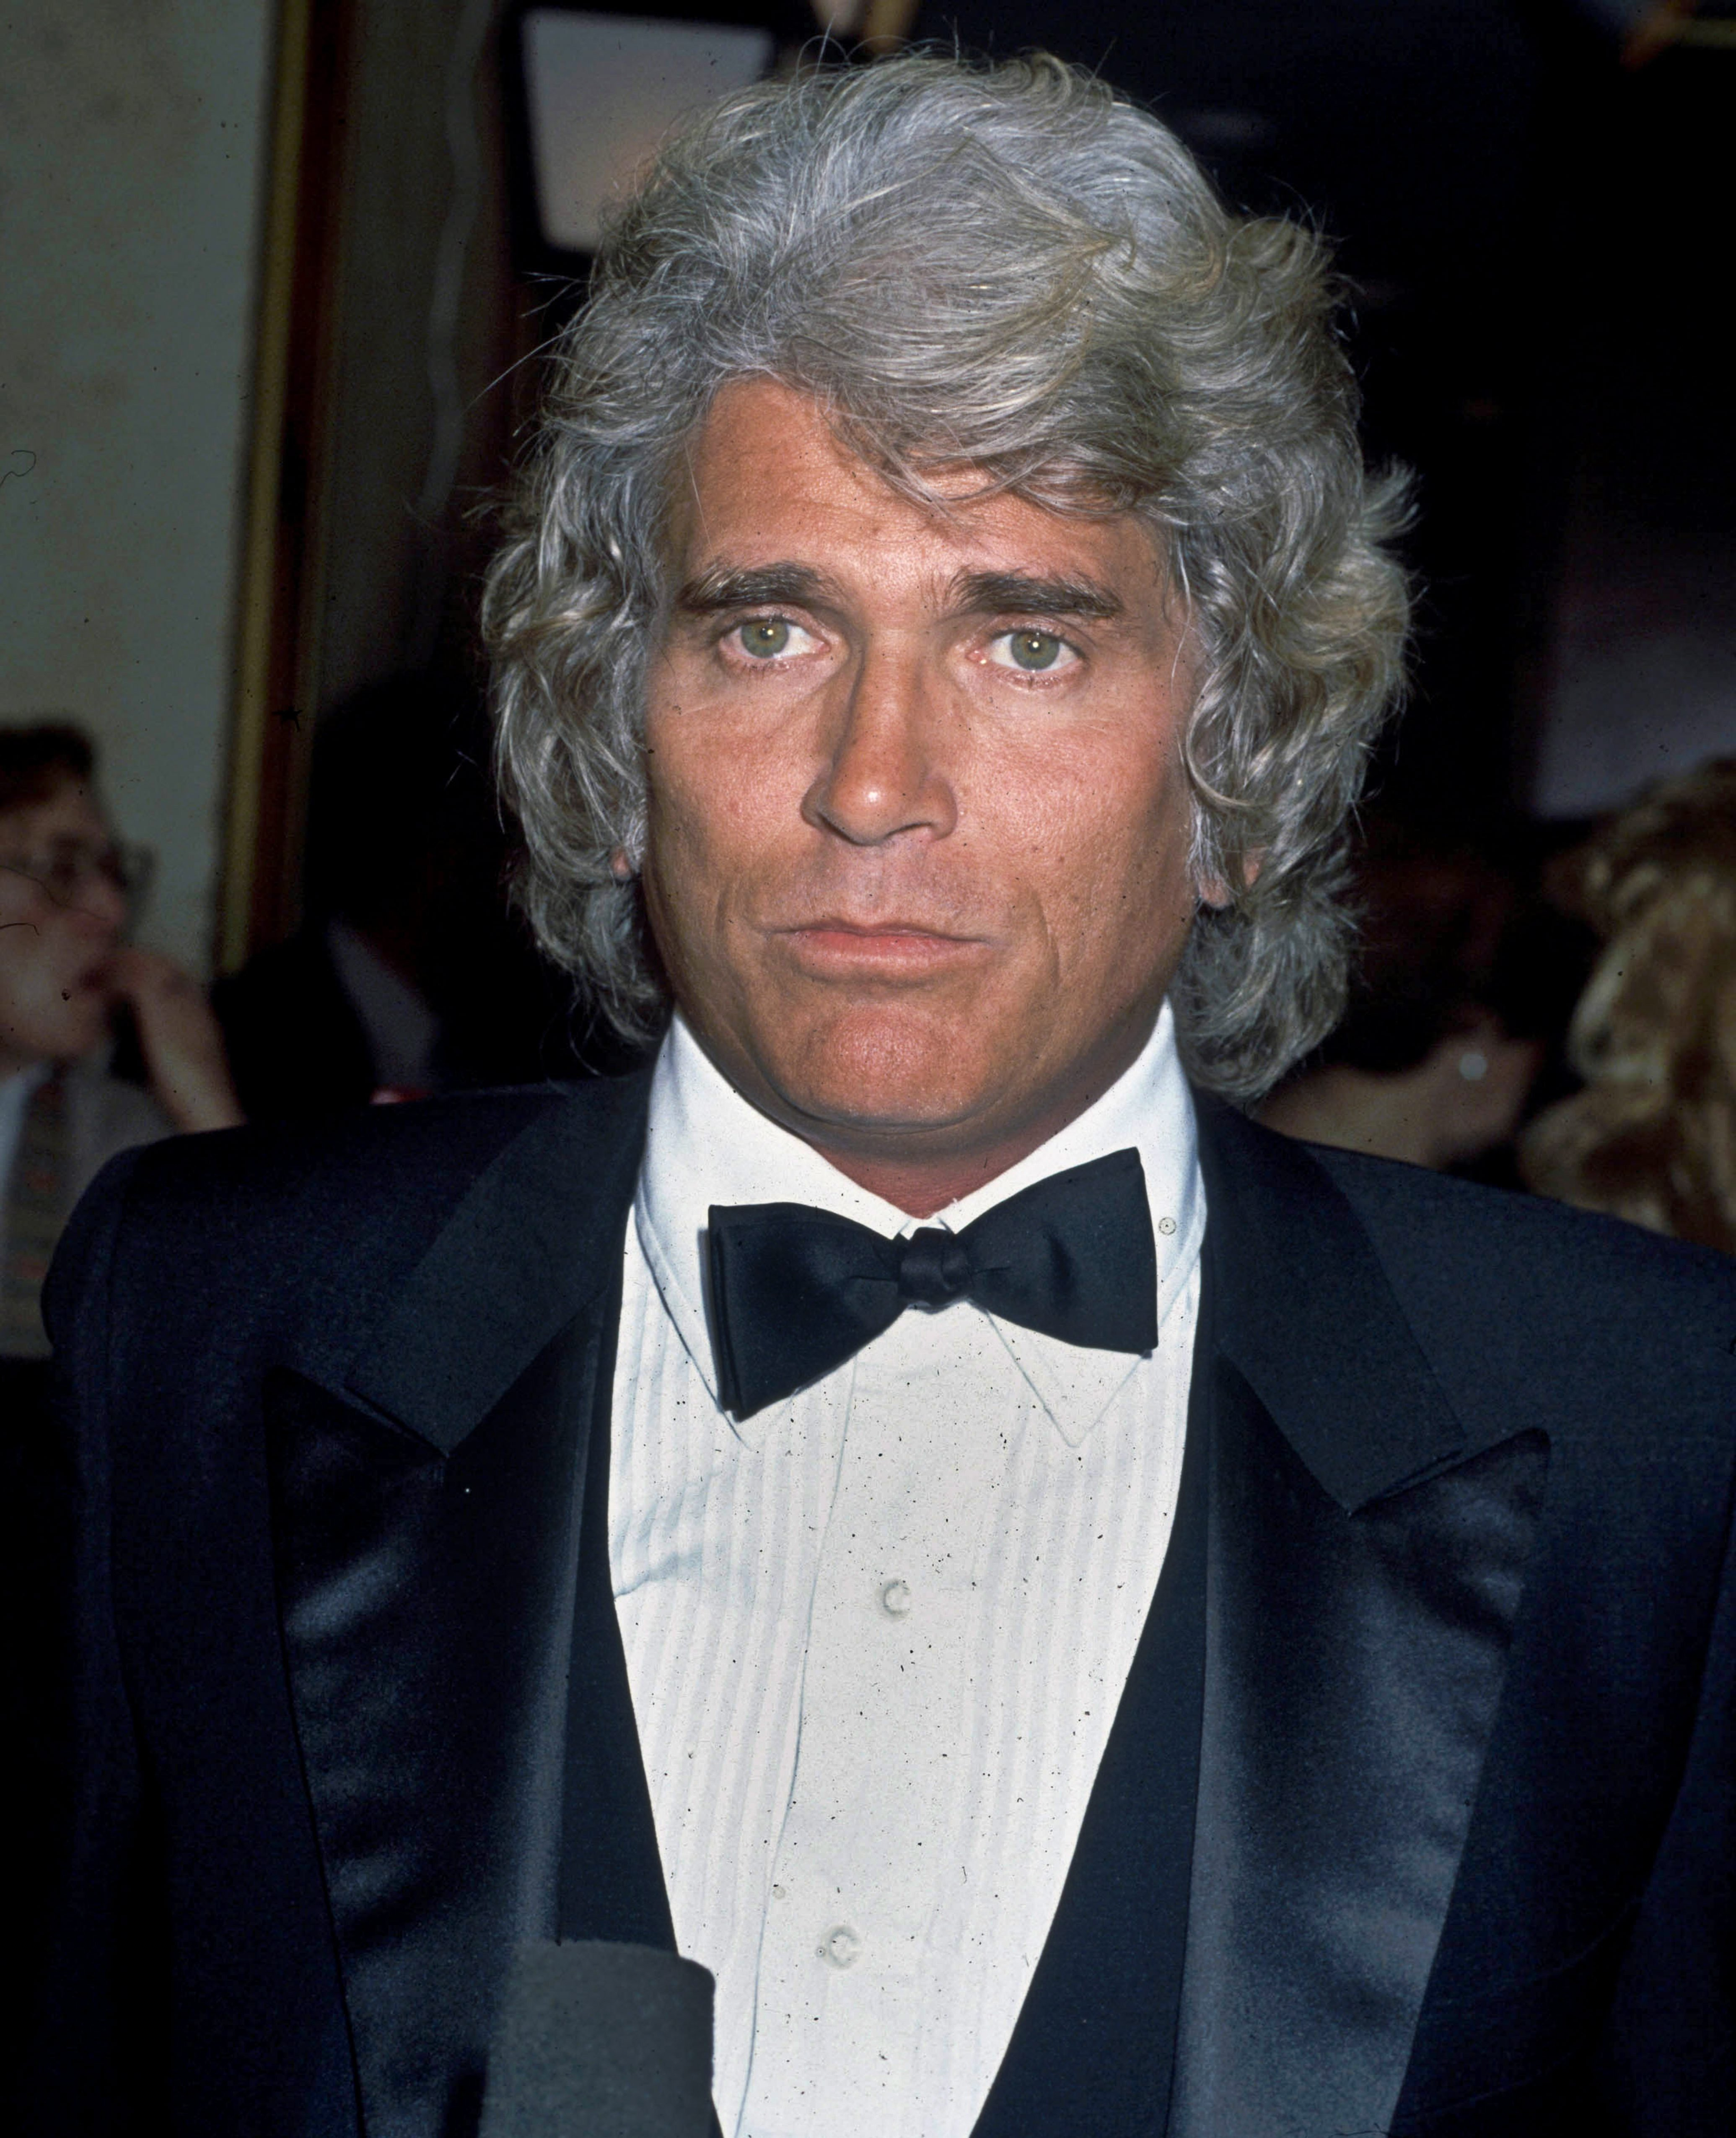 Michael Landon circa 1990. | Source: Getty Images